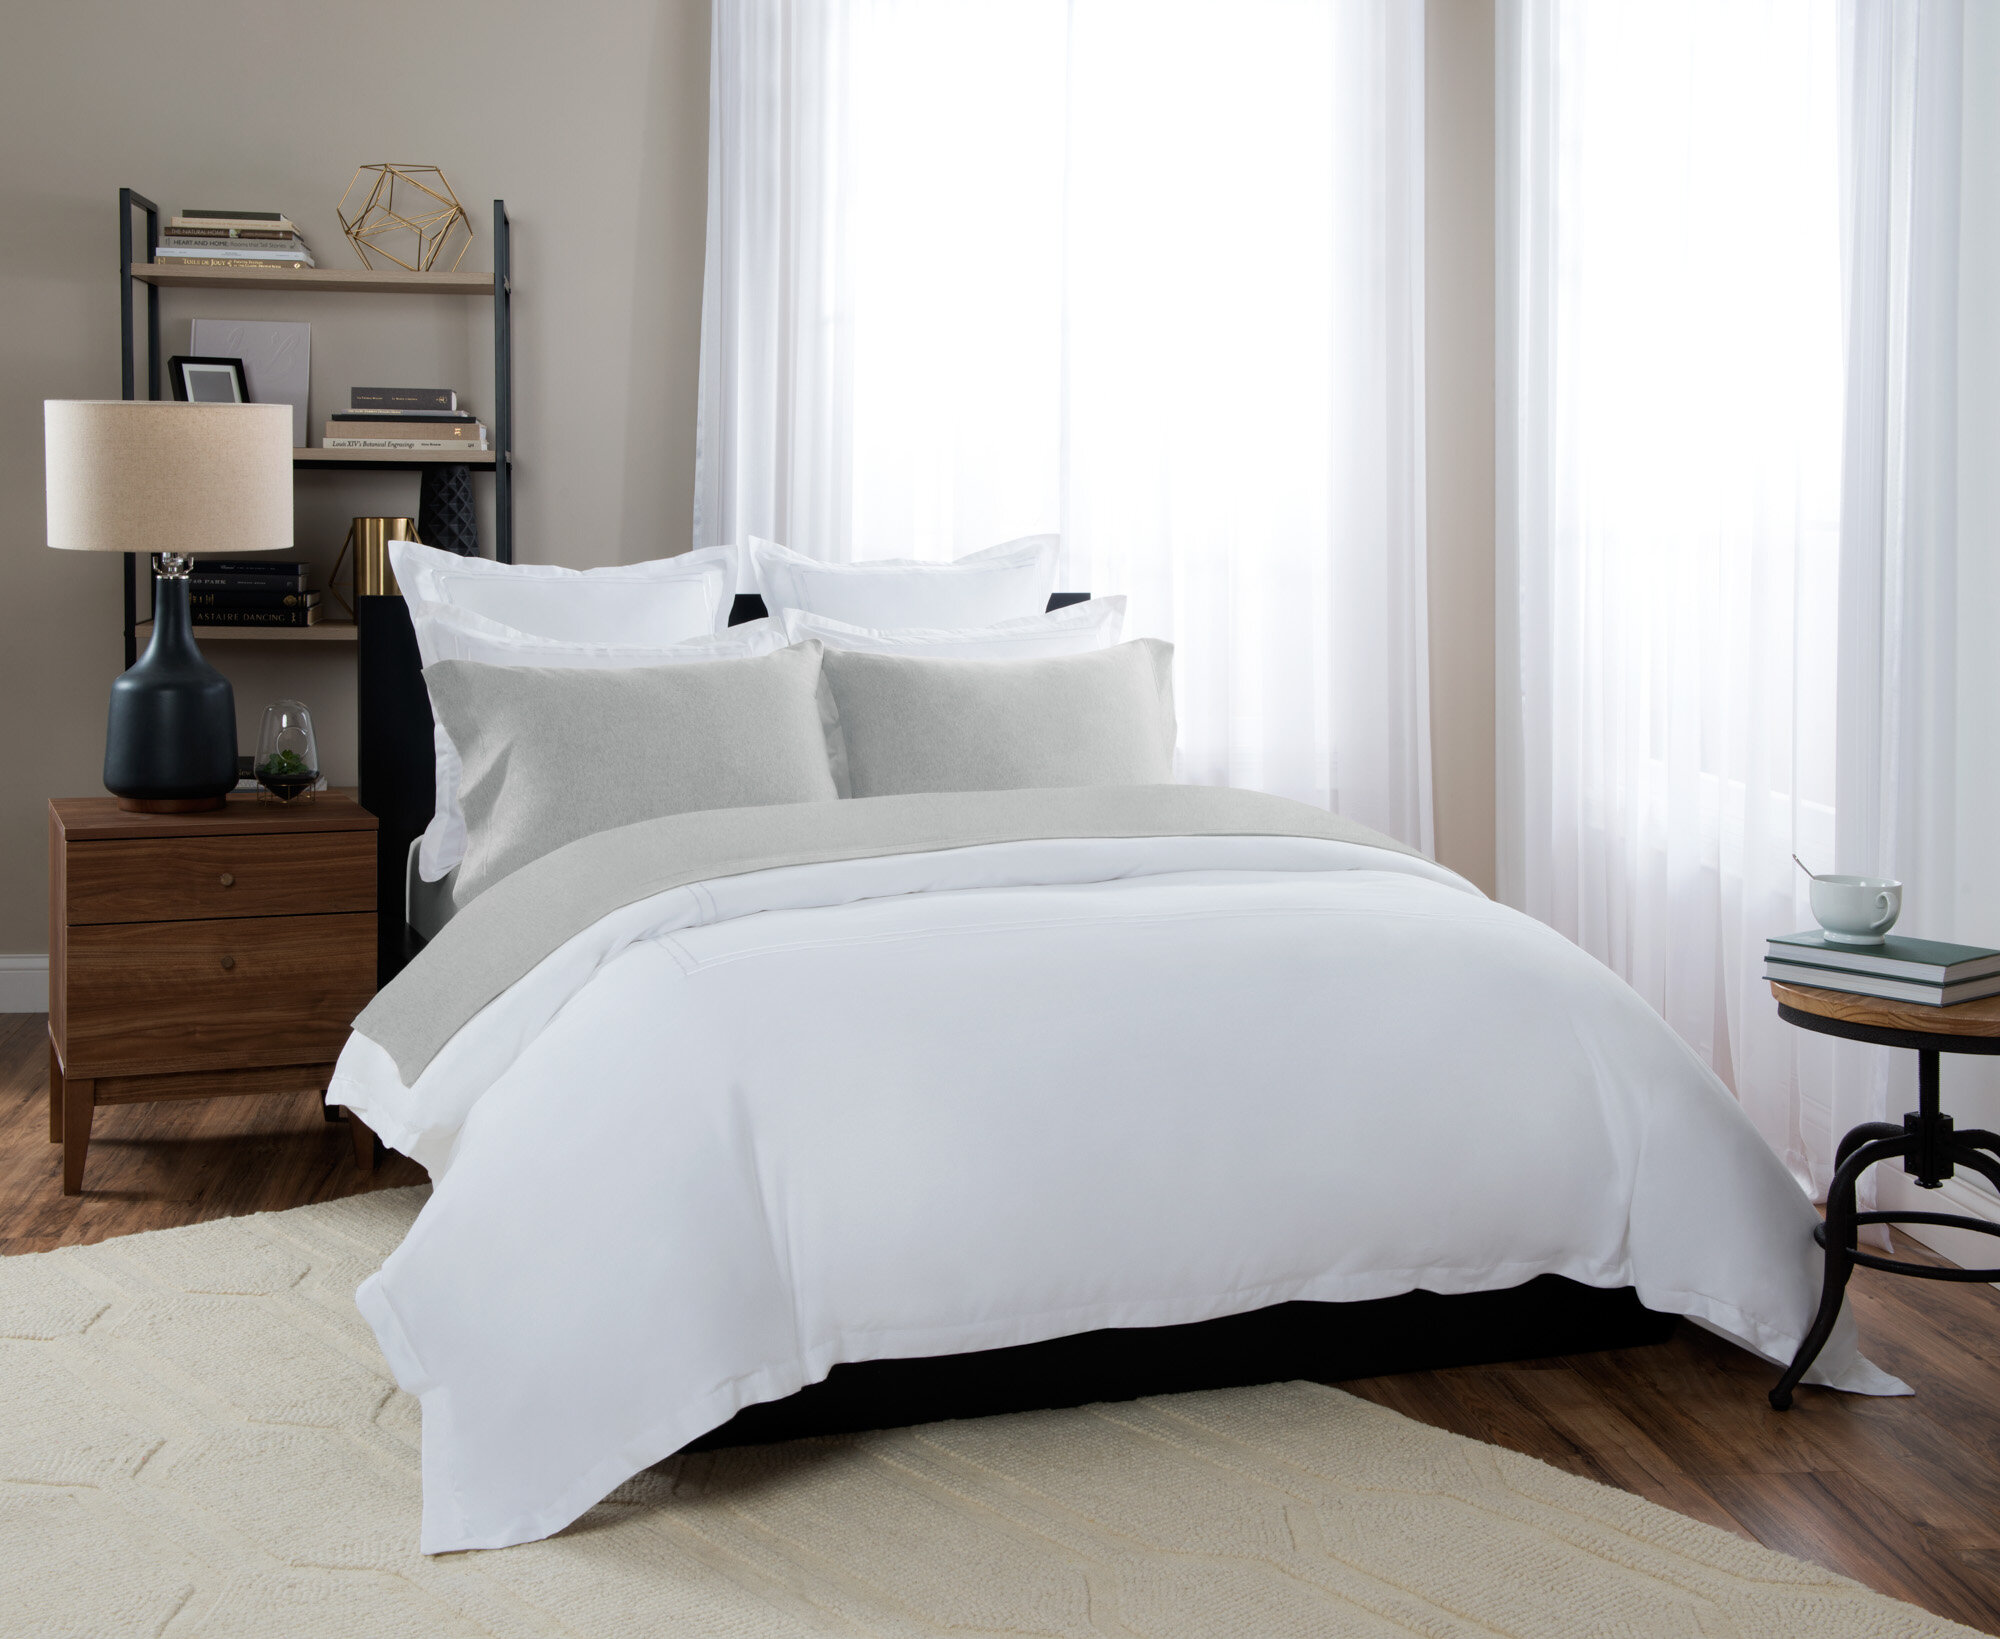 Briarwood Home 100% Cotton Heathered Jersey Sheet Set U0026 Reviews | Wayfair